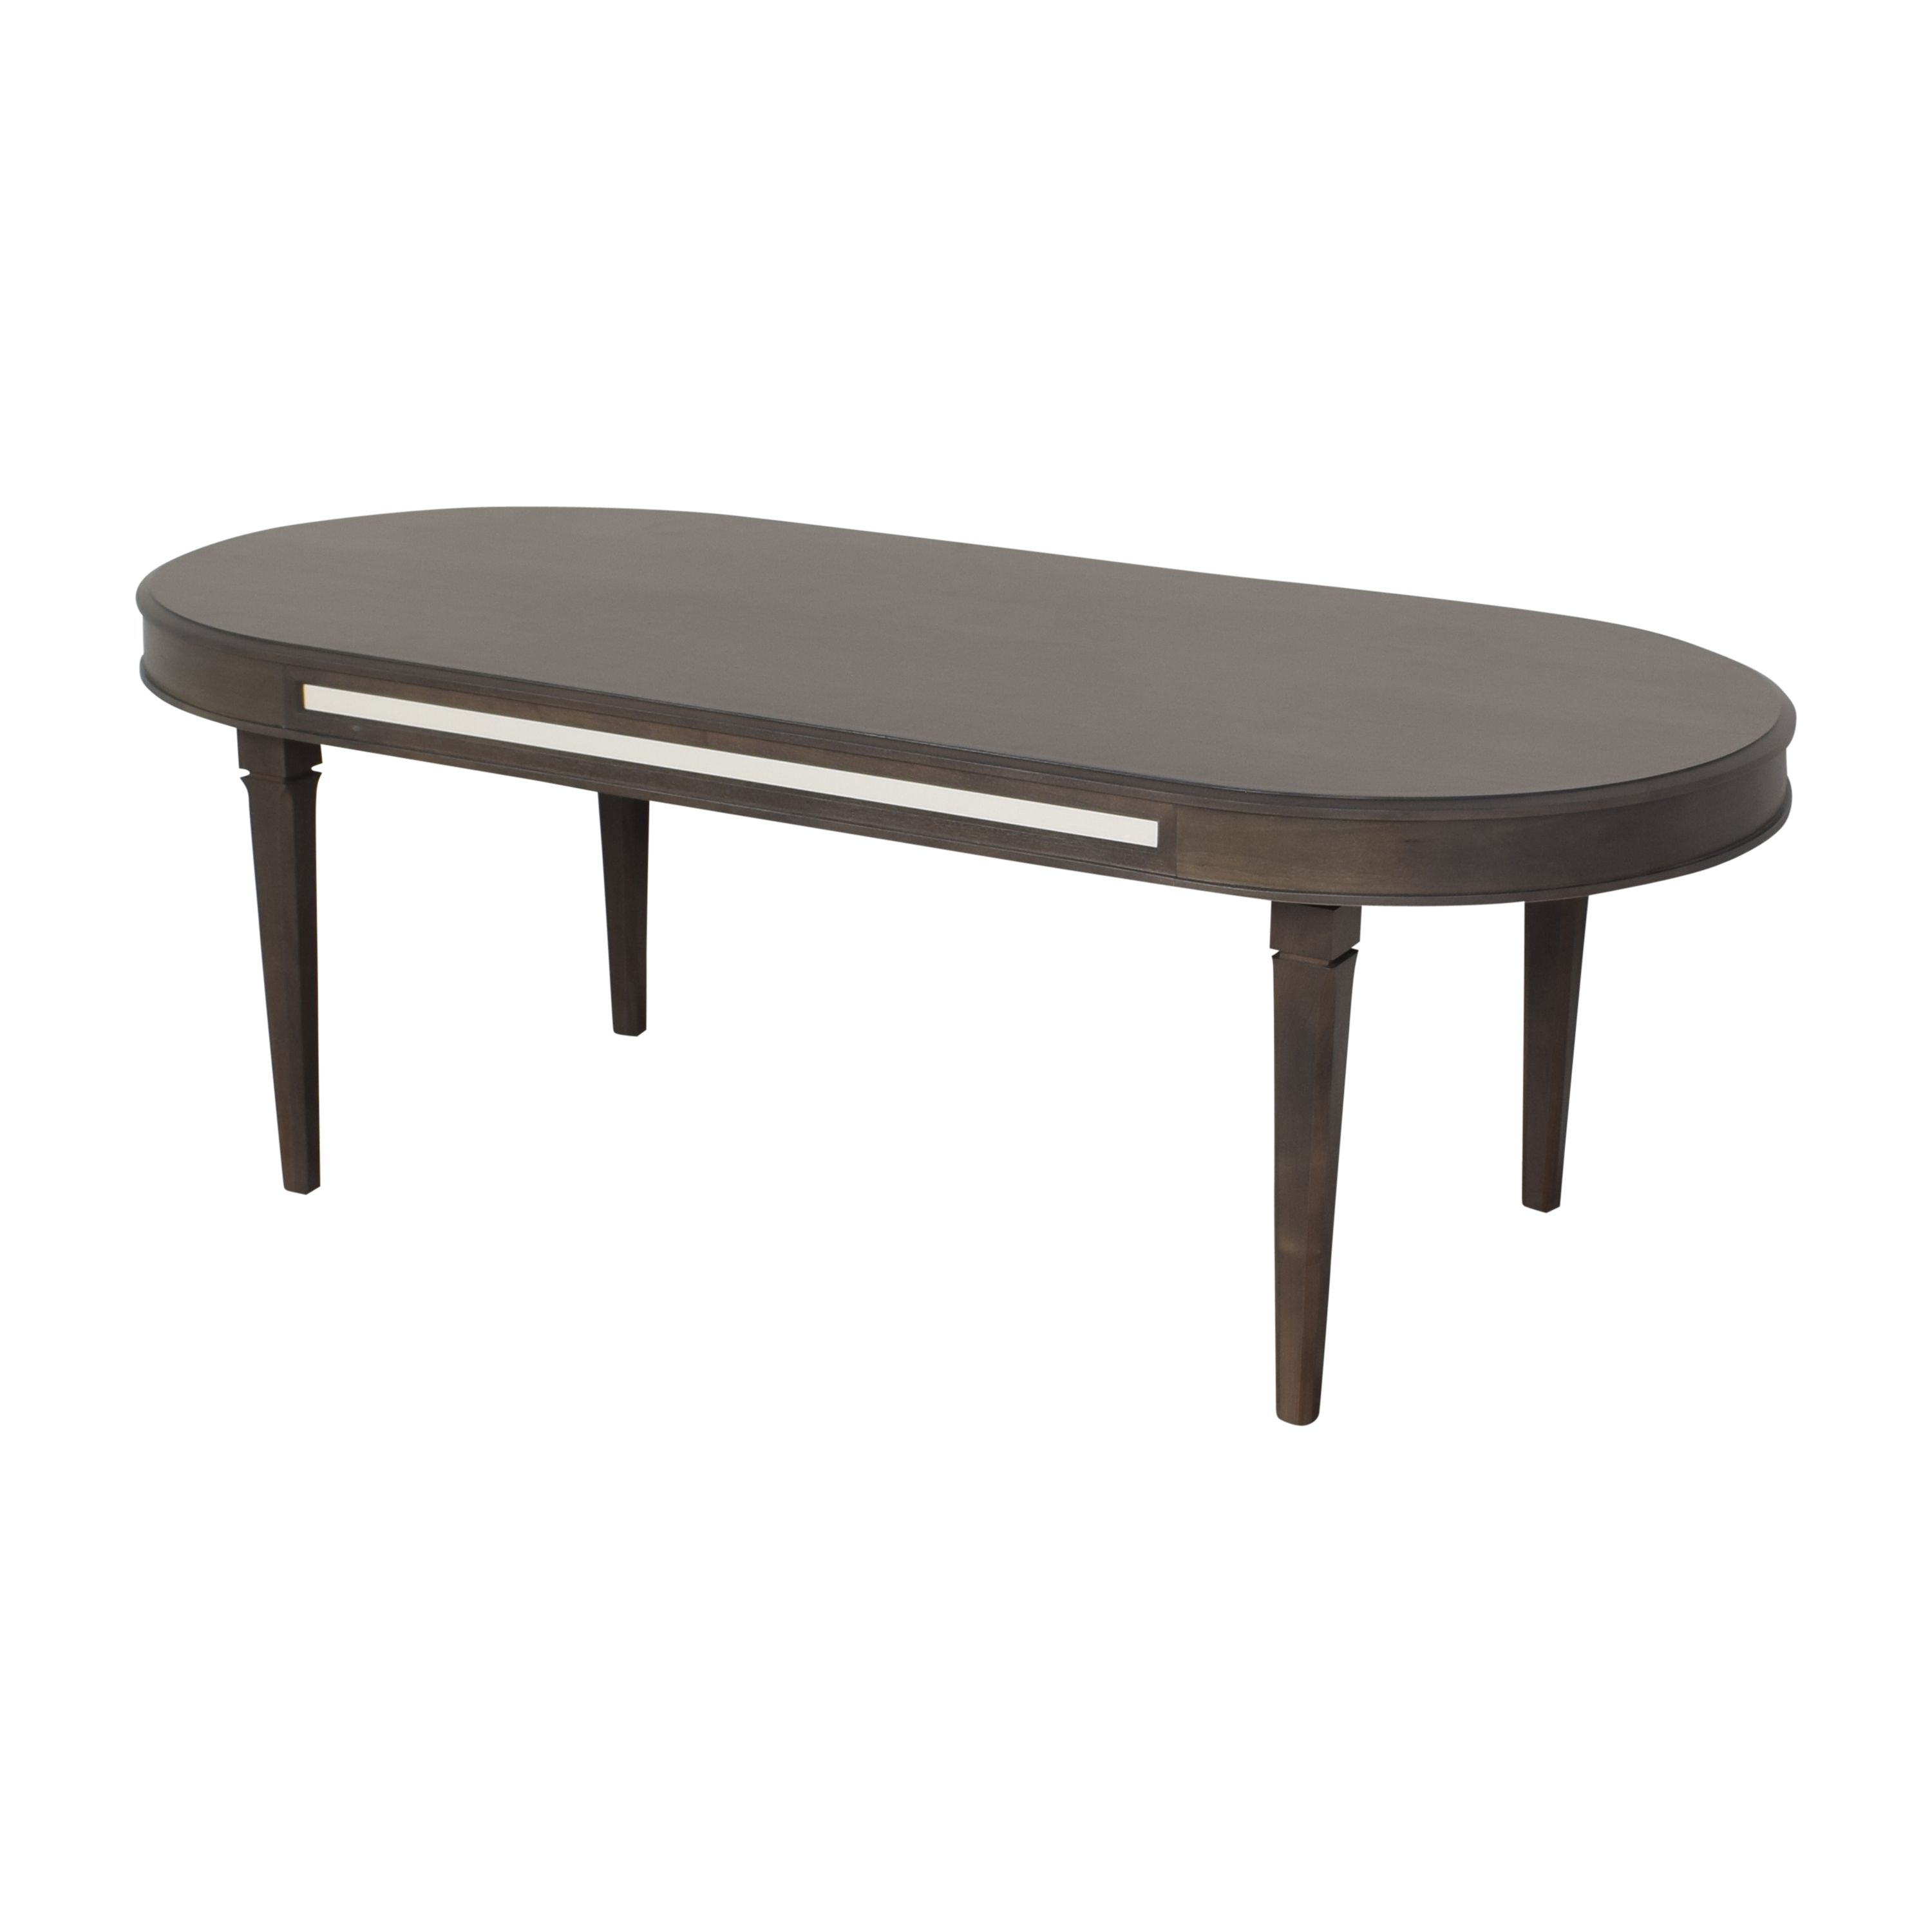 buy The New Traditionalists Oval Dining Table The New Traditionalists Dinner Tables